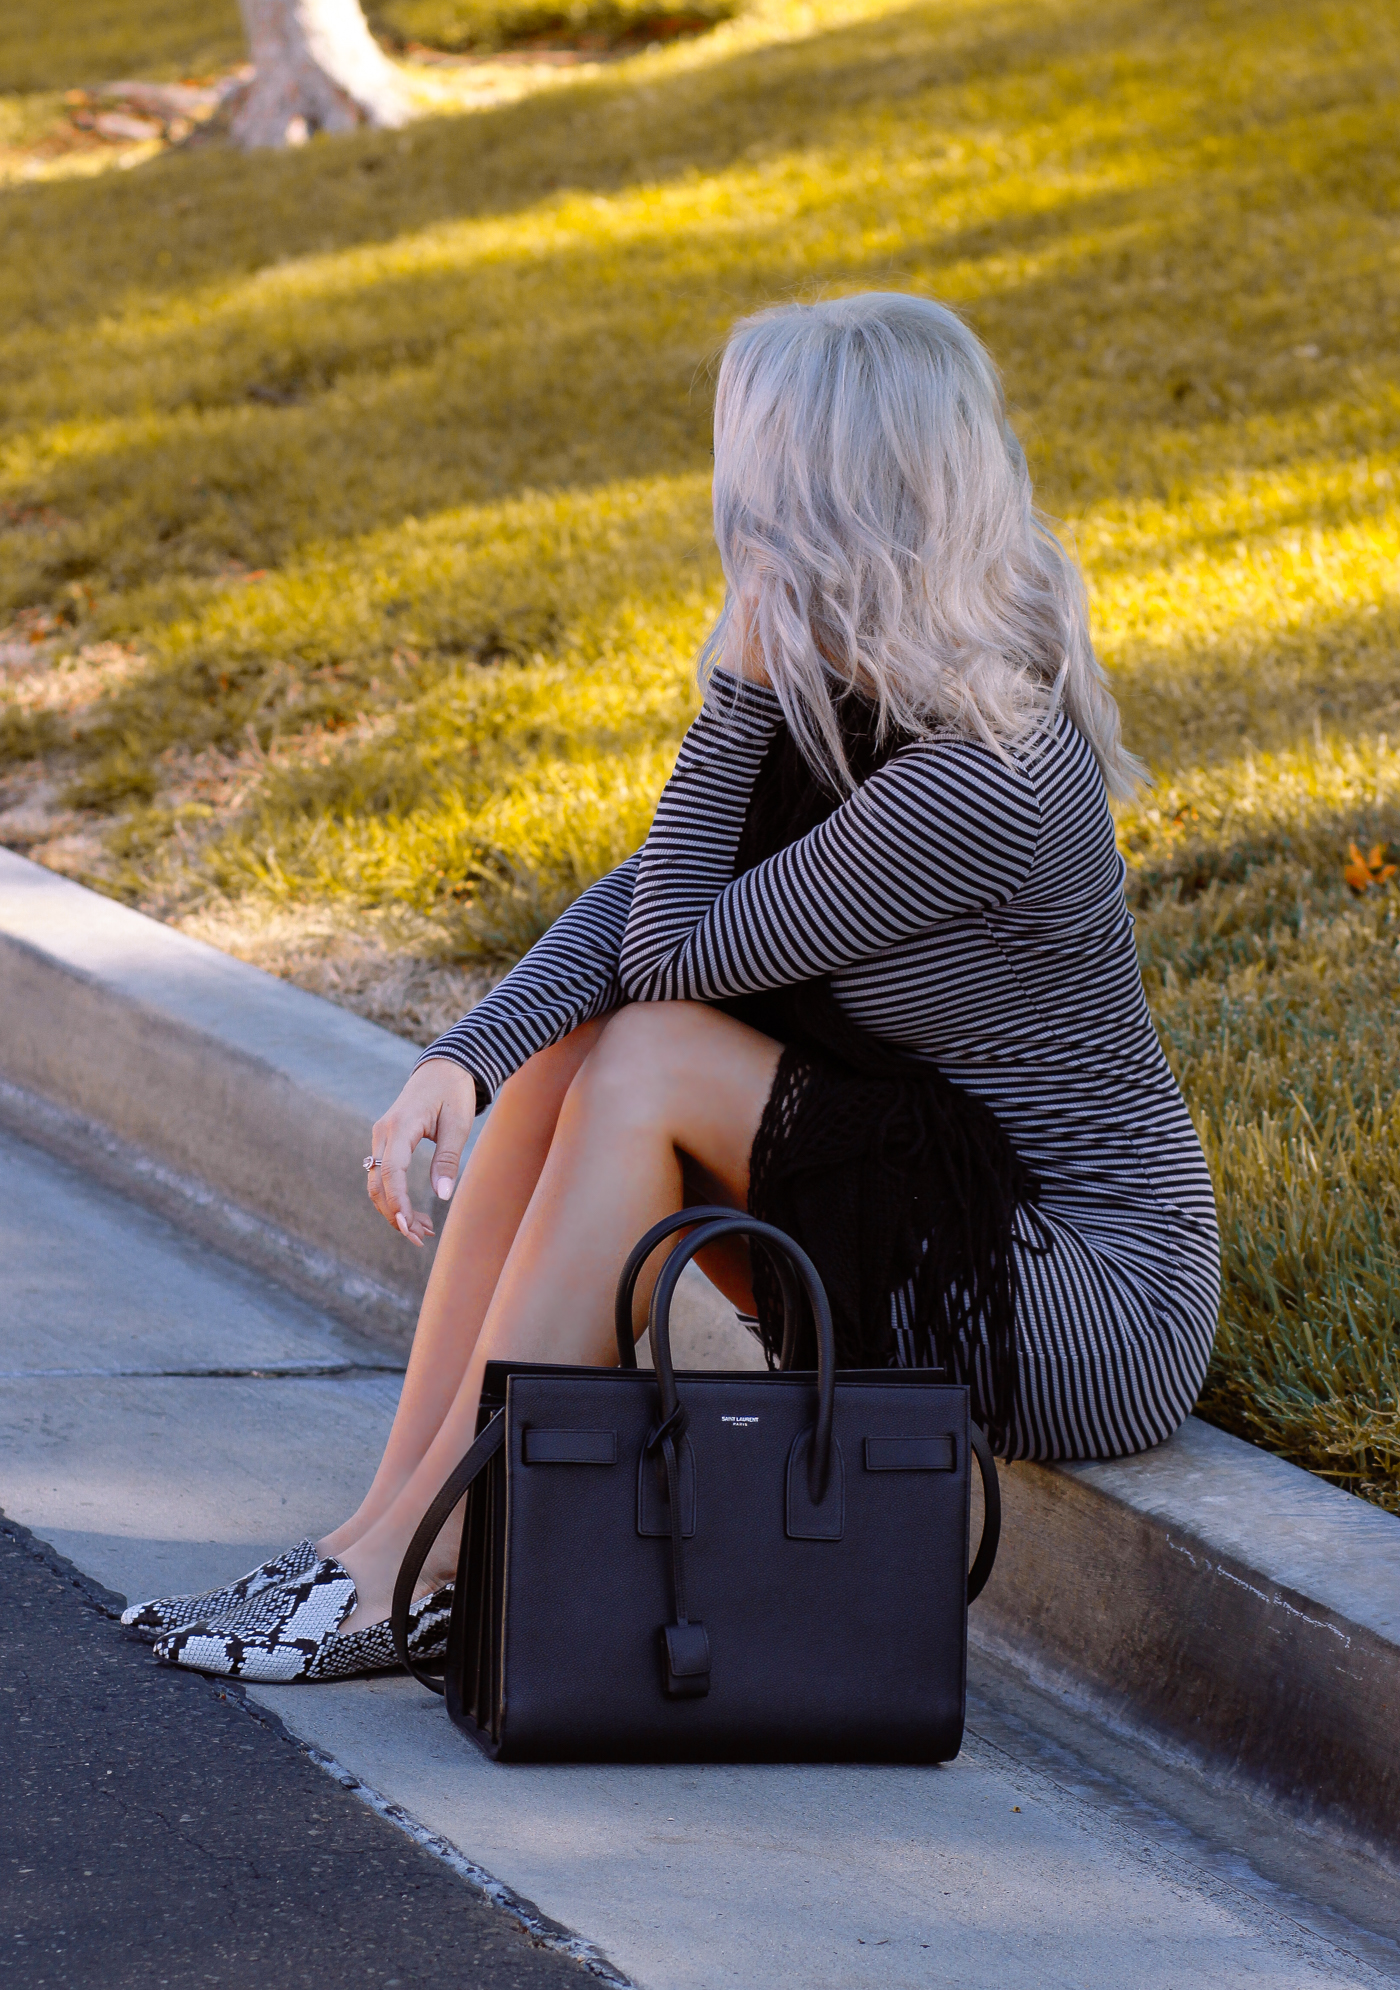 Blondie in the City   Button Down Bodycon Dress @Justfabonline   Snake Loafers @nakdfashion 20% off with code Hayley20